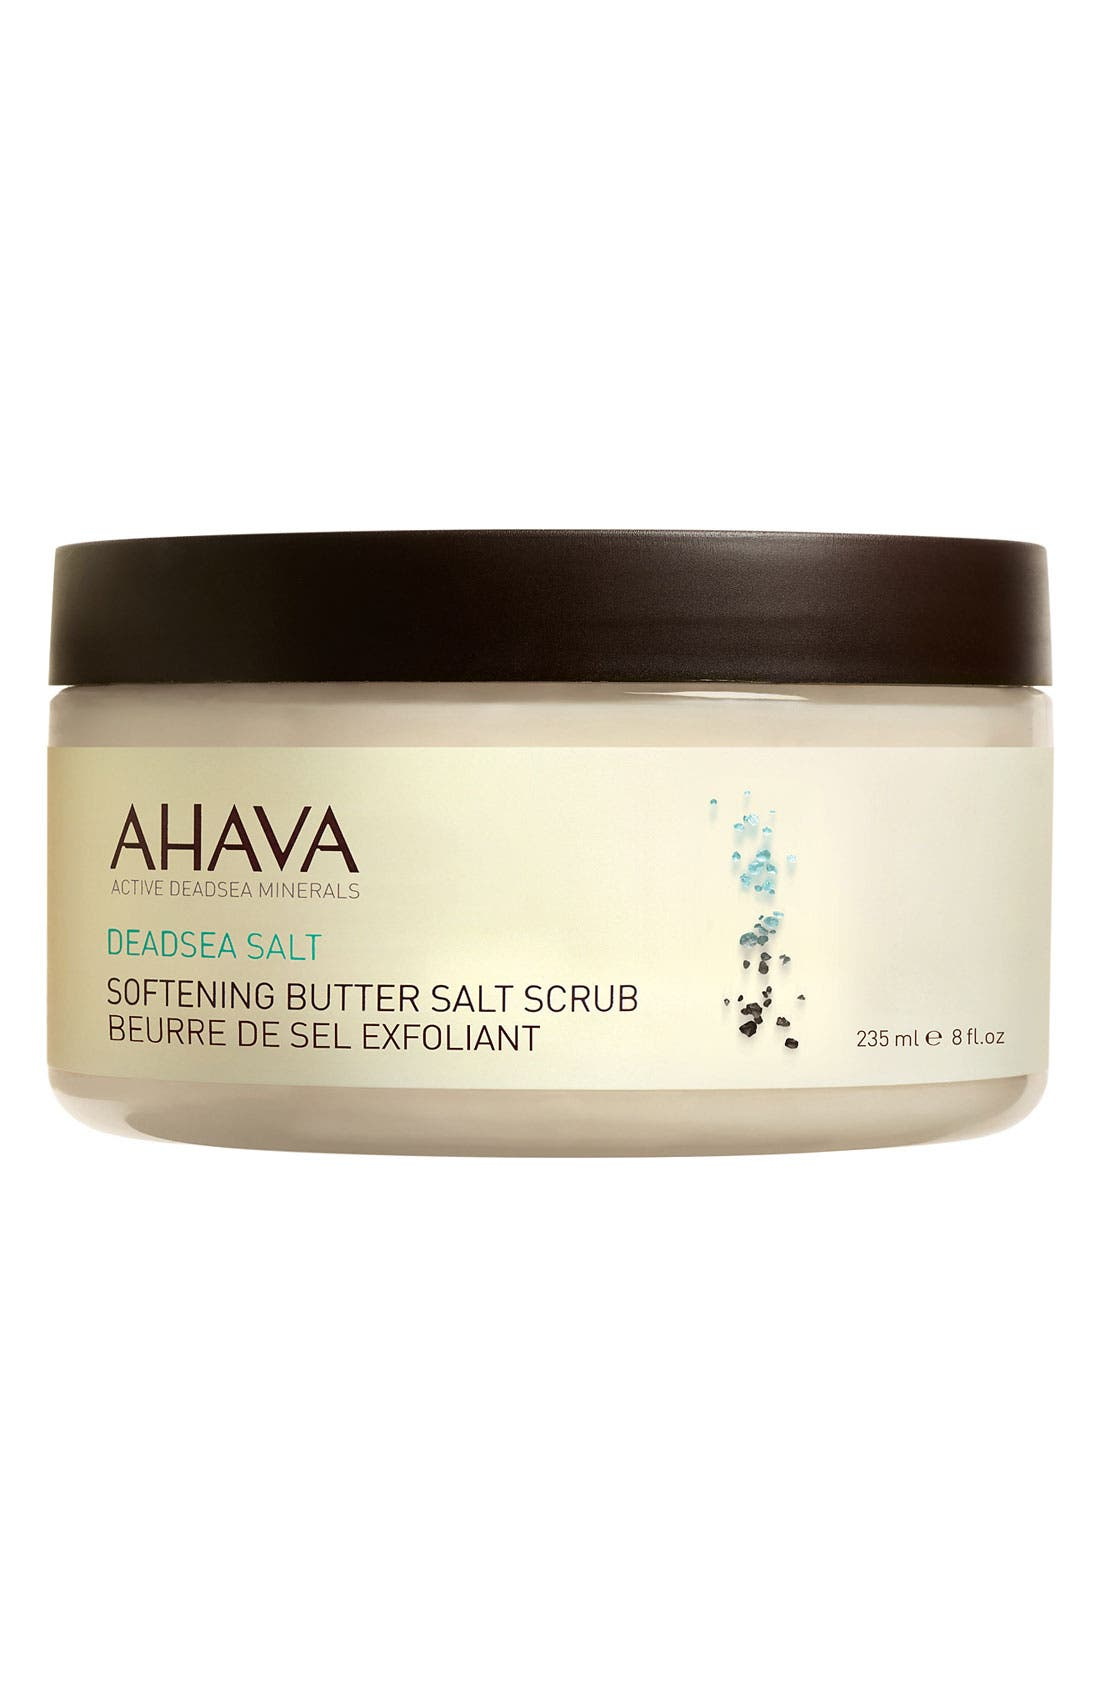 AHAVA 'DeadSea Salt' Softening Butter Salt Scrub